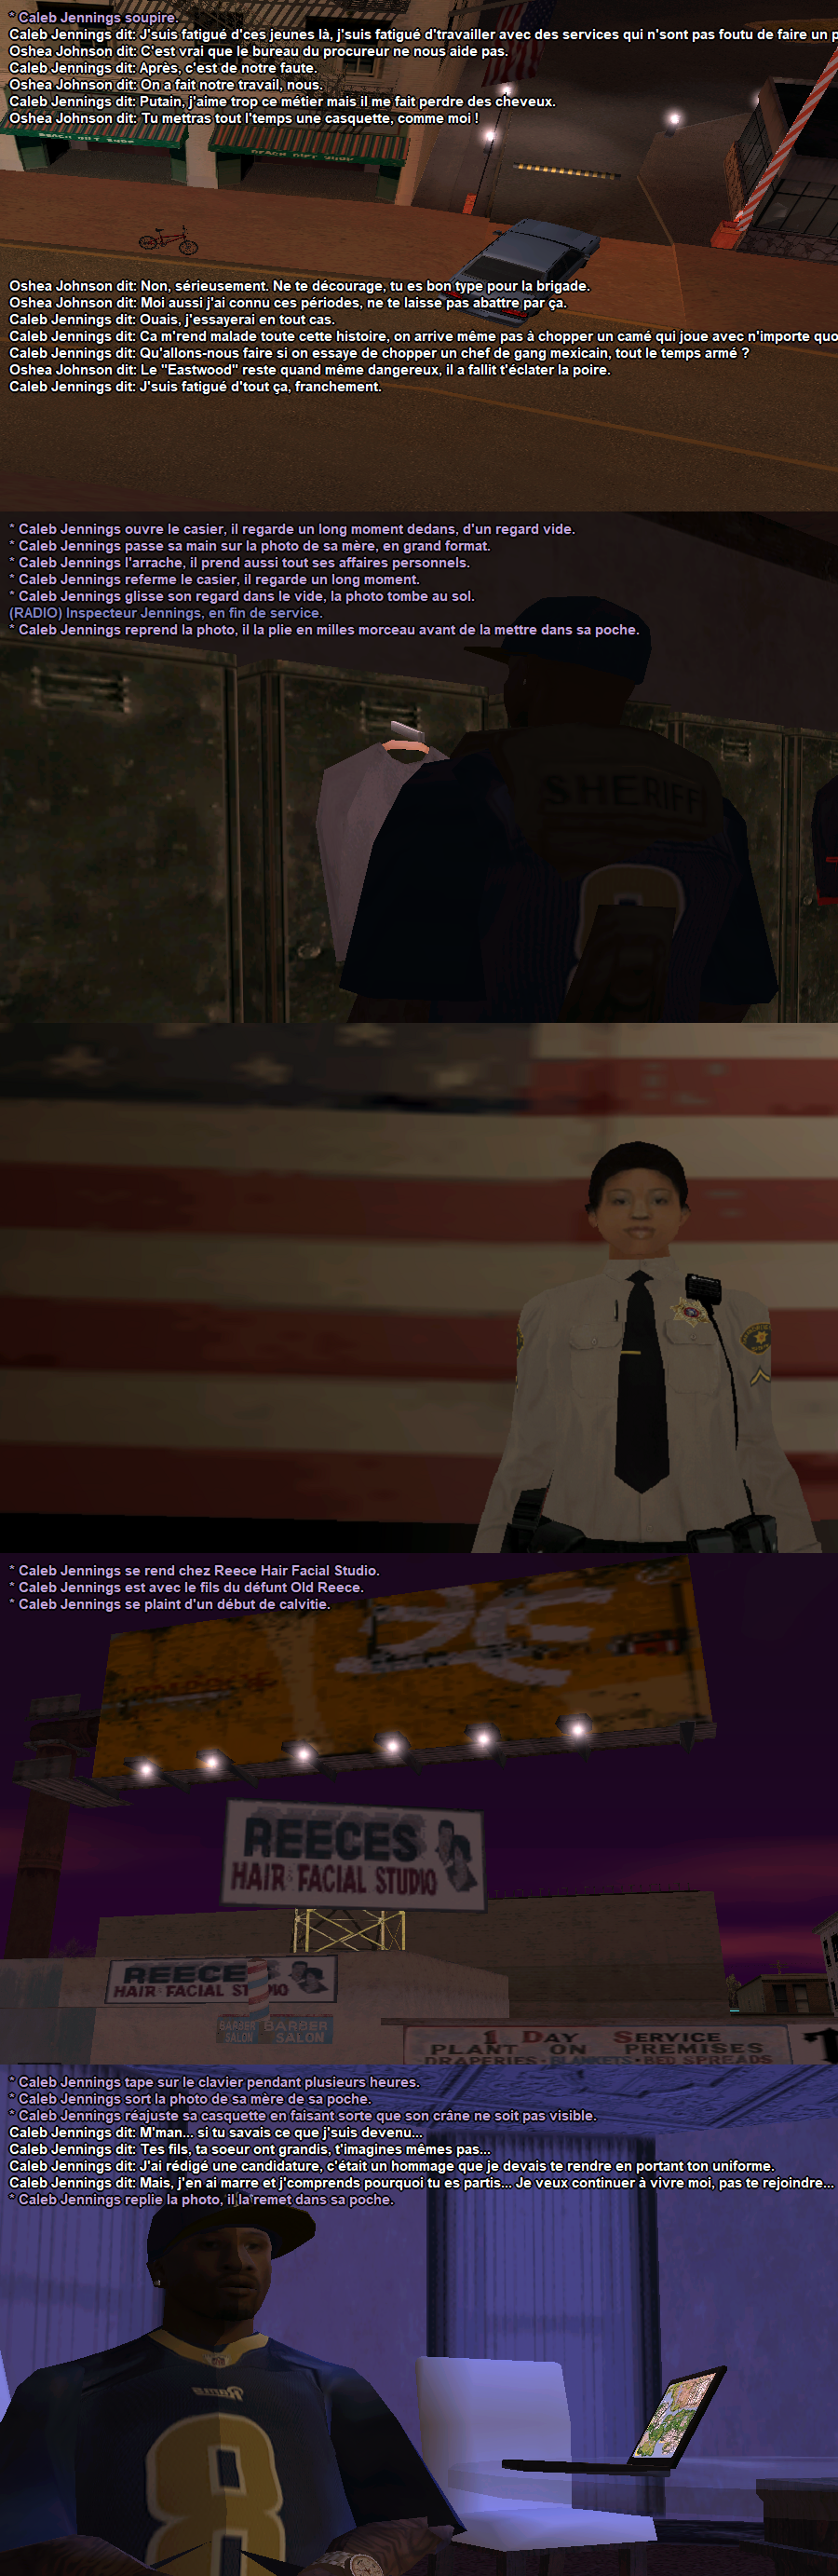 Los Santos Sheriff's Department - A tradition of service (8) - Page 16 1536193116-a